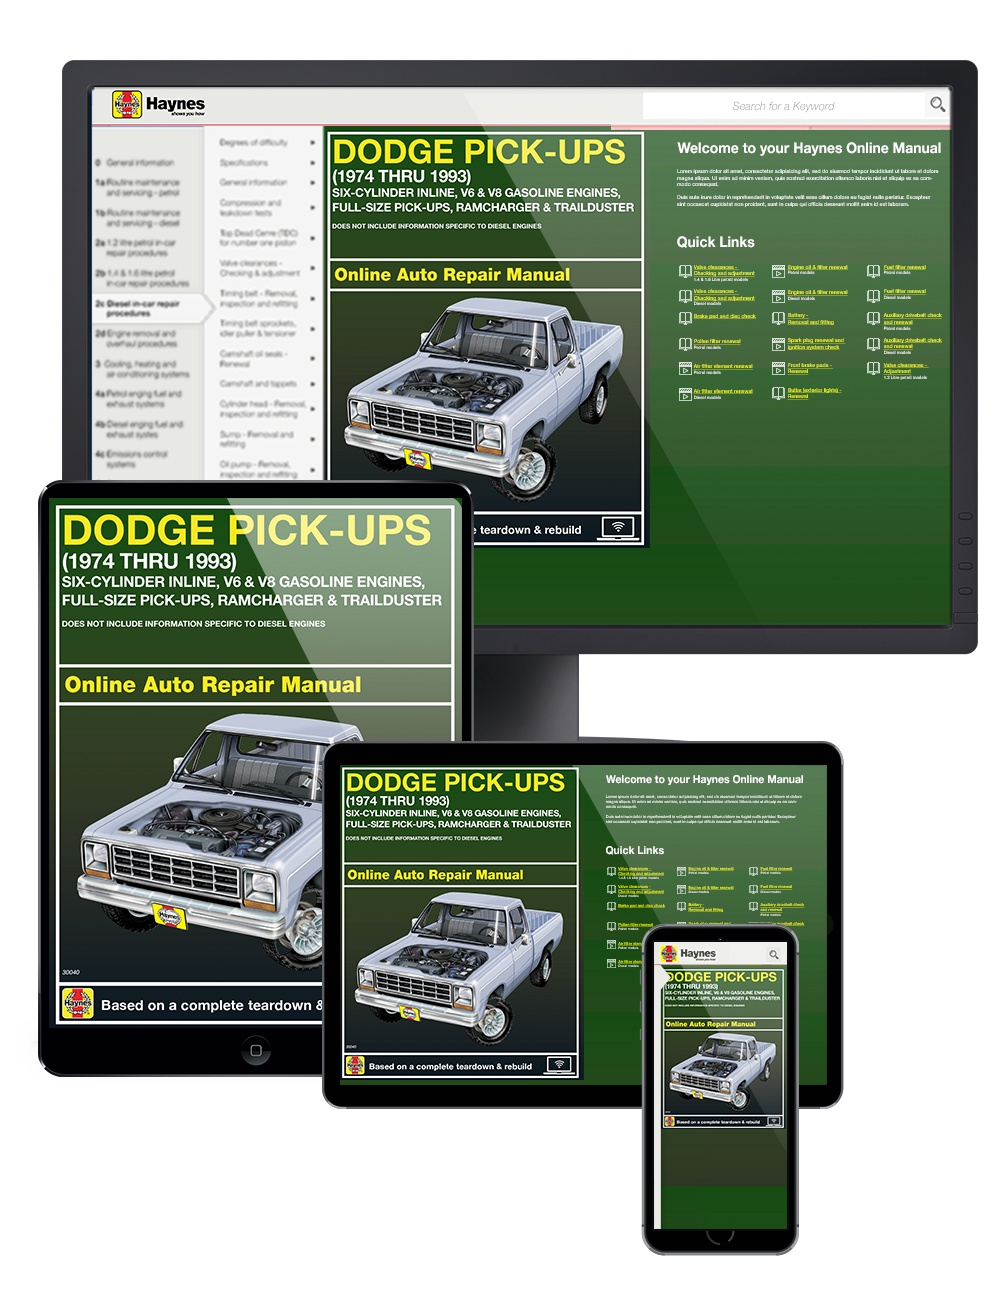 Manual cover for Dodge Full-size Pick-ups covering Ramcharger and Trailduster (74-93) Haynes Online Manual